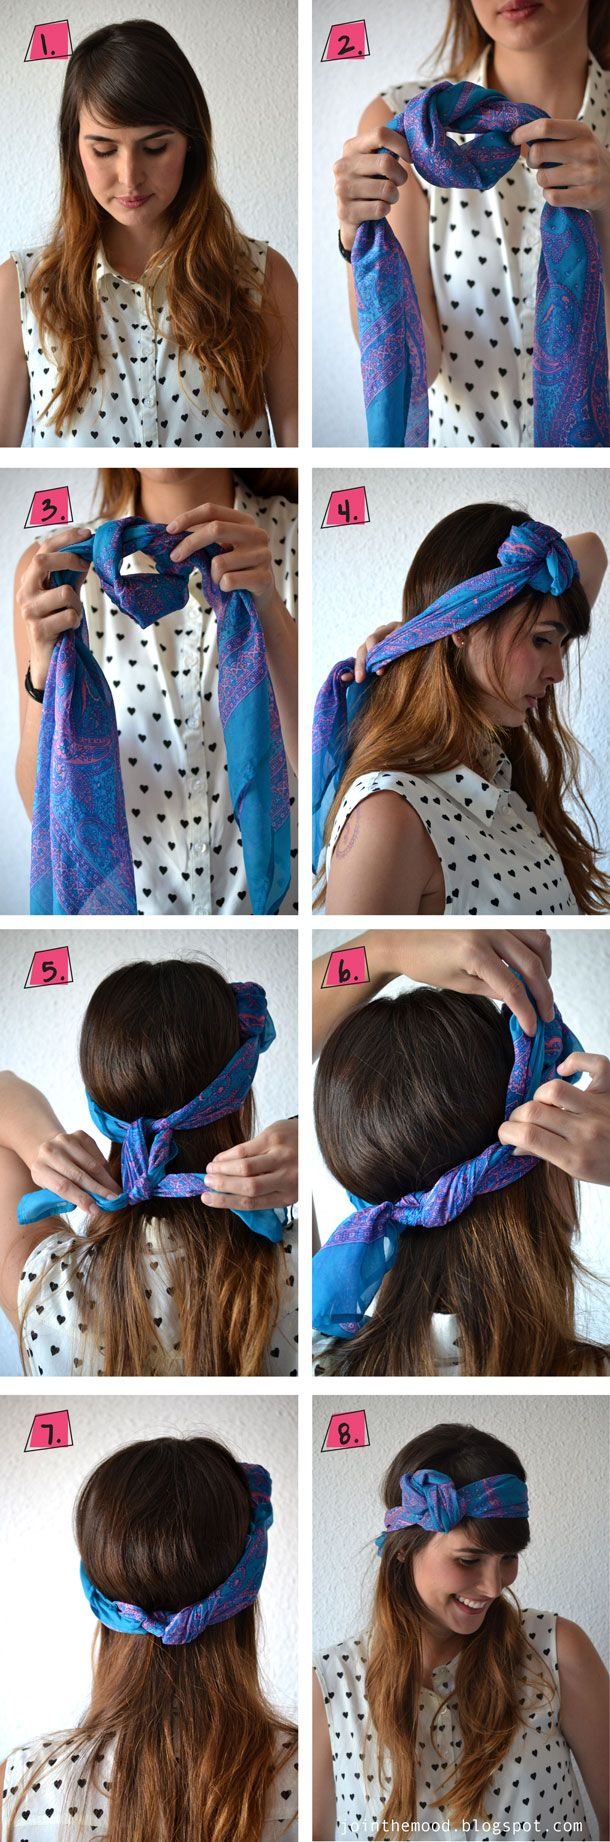 Join the Mood: HAIRSTYLE WITH BANDANA PART 3 / PEINADO CON PAÑOLETA PARTE 3